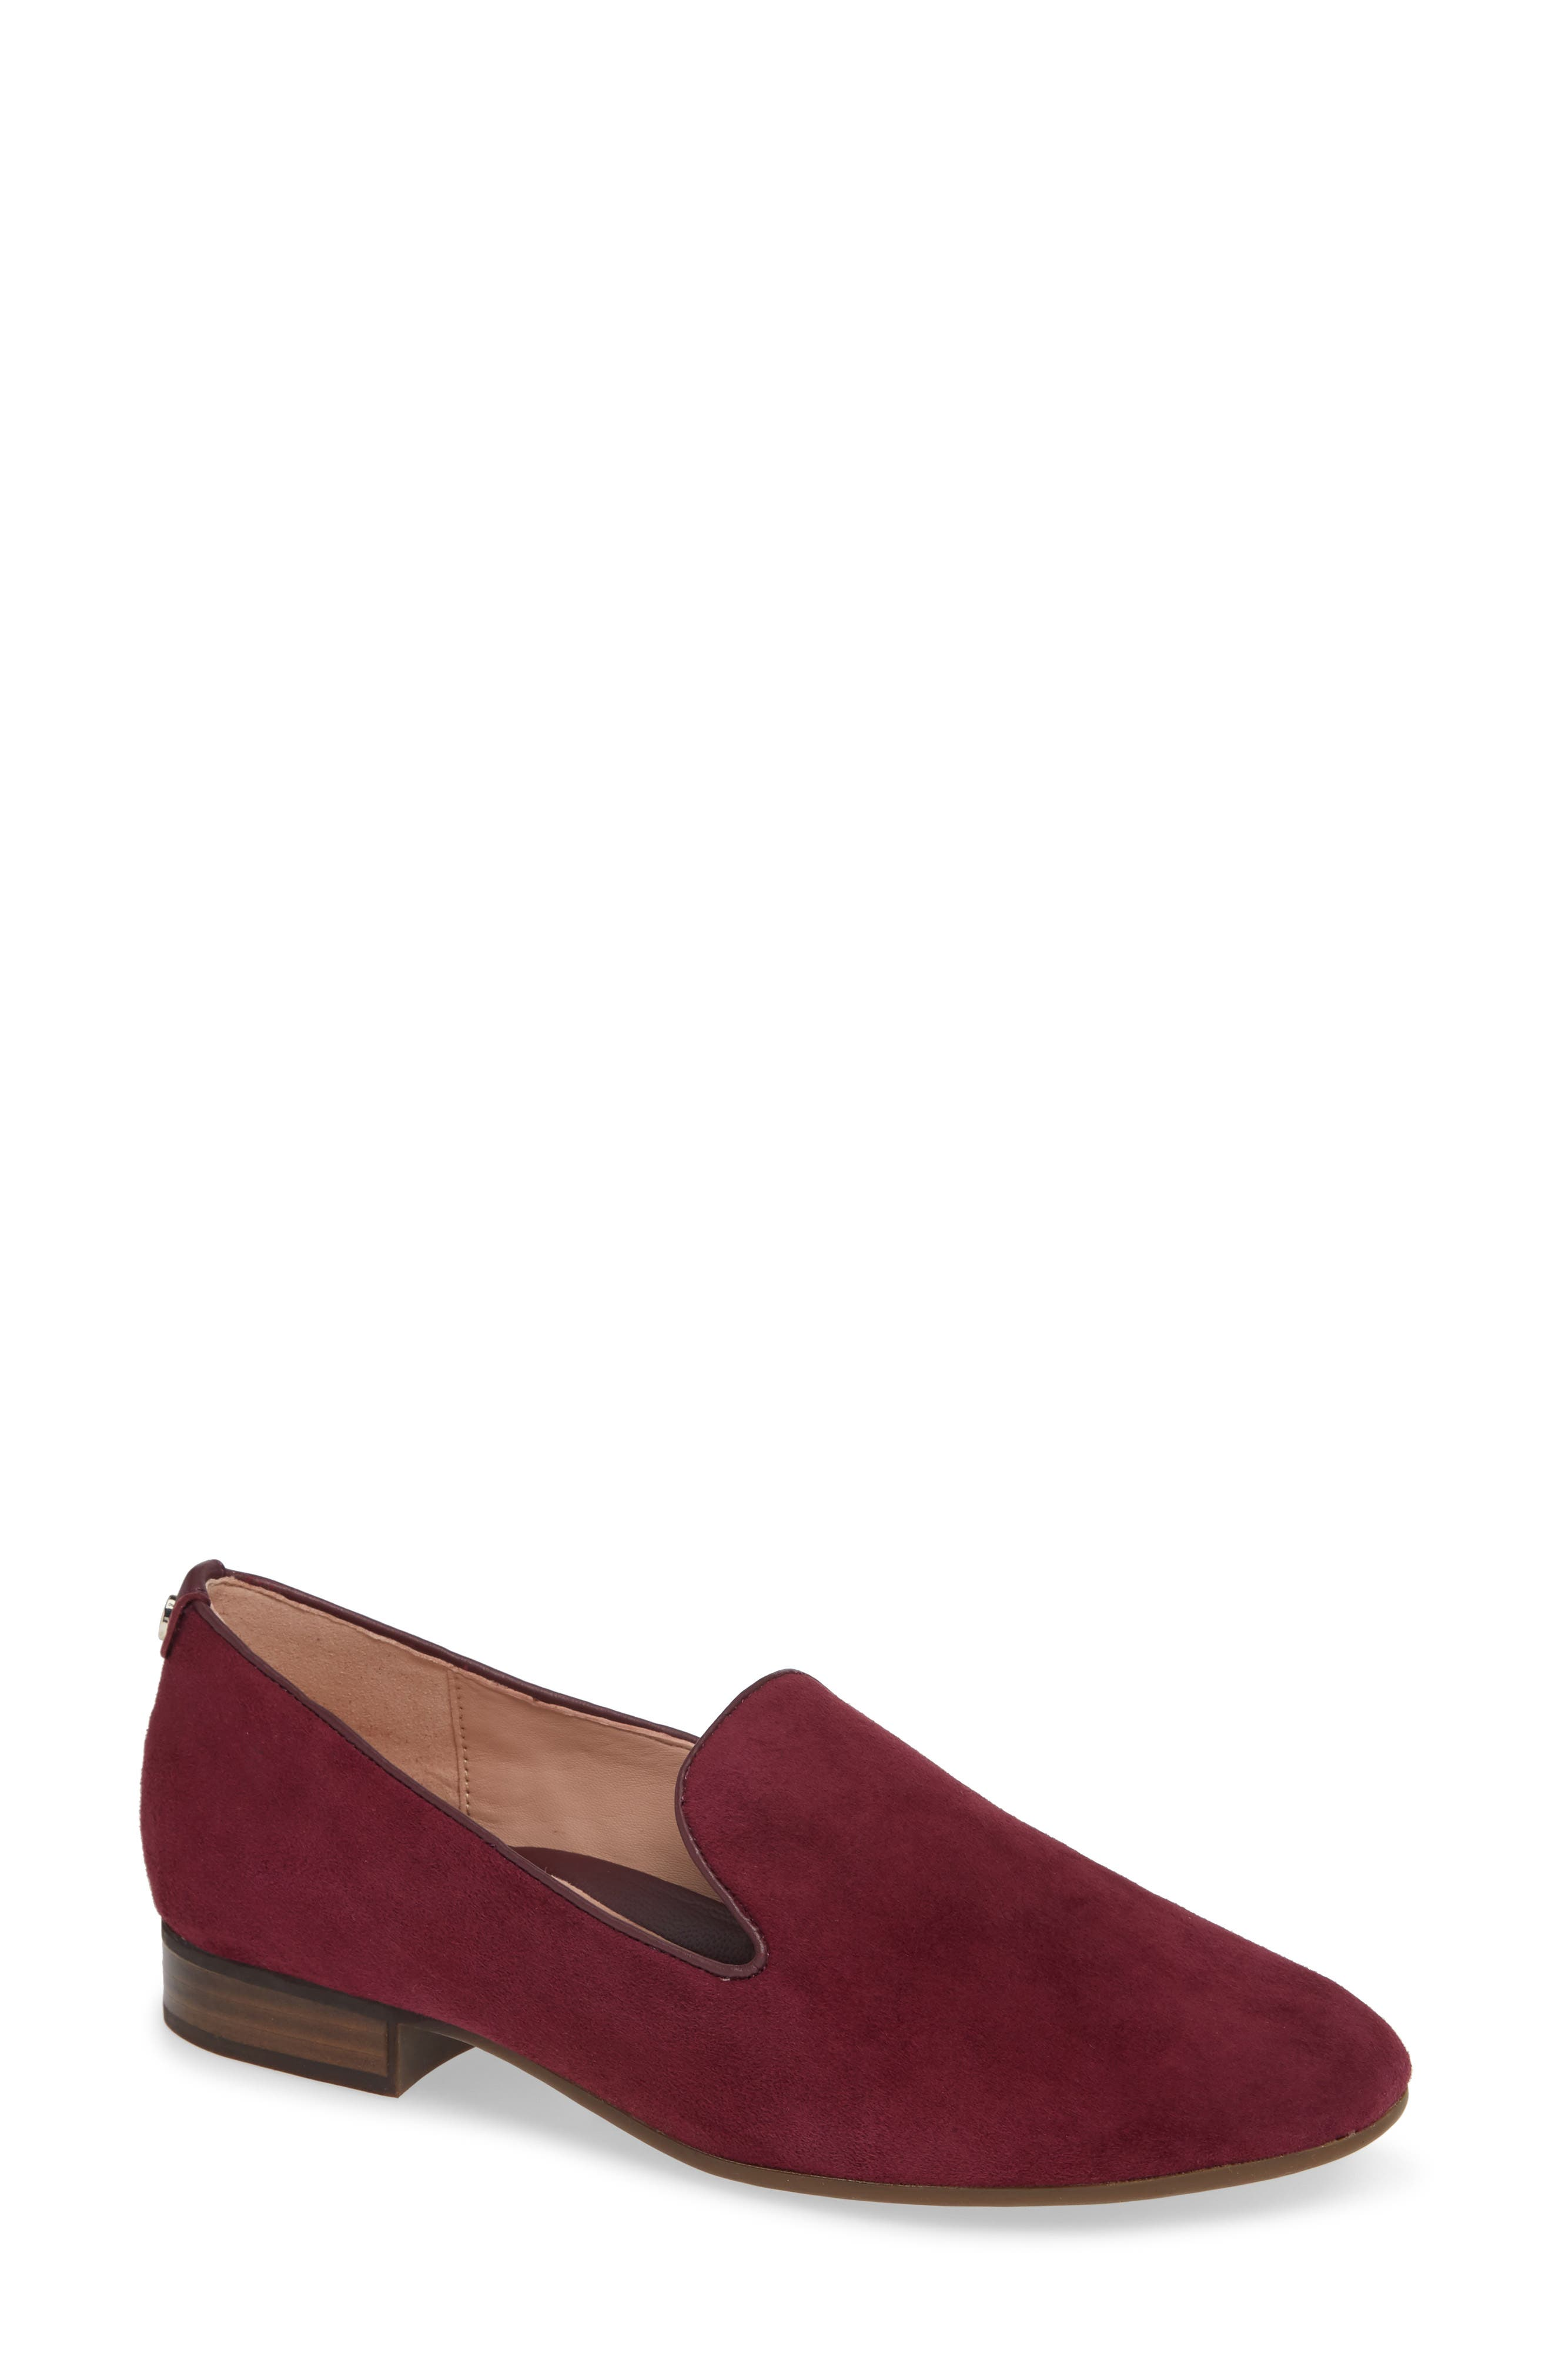 TARYN ROSE,                             Bryanna Loafer,                             Main thumbnail 1, color,                             FIG SUEDE